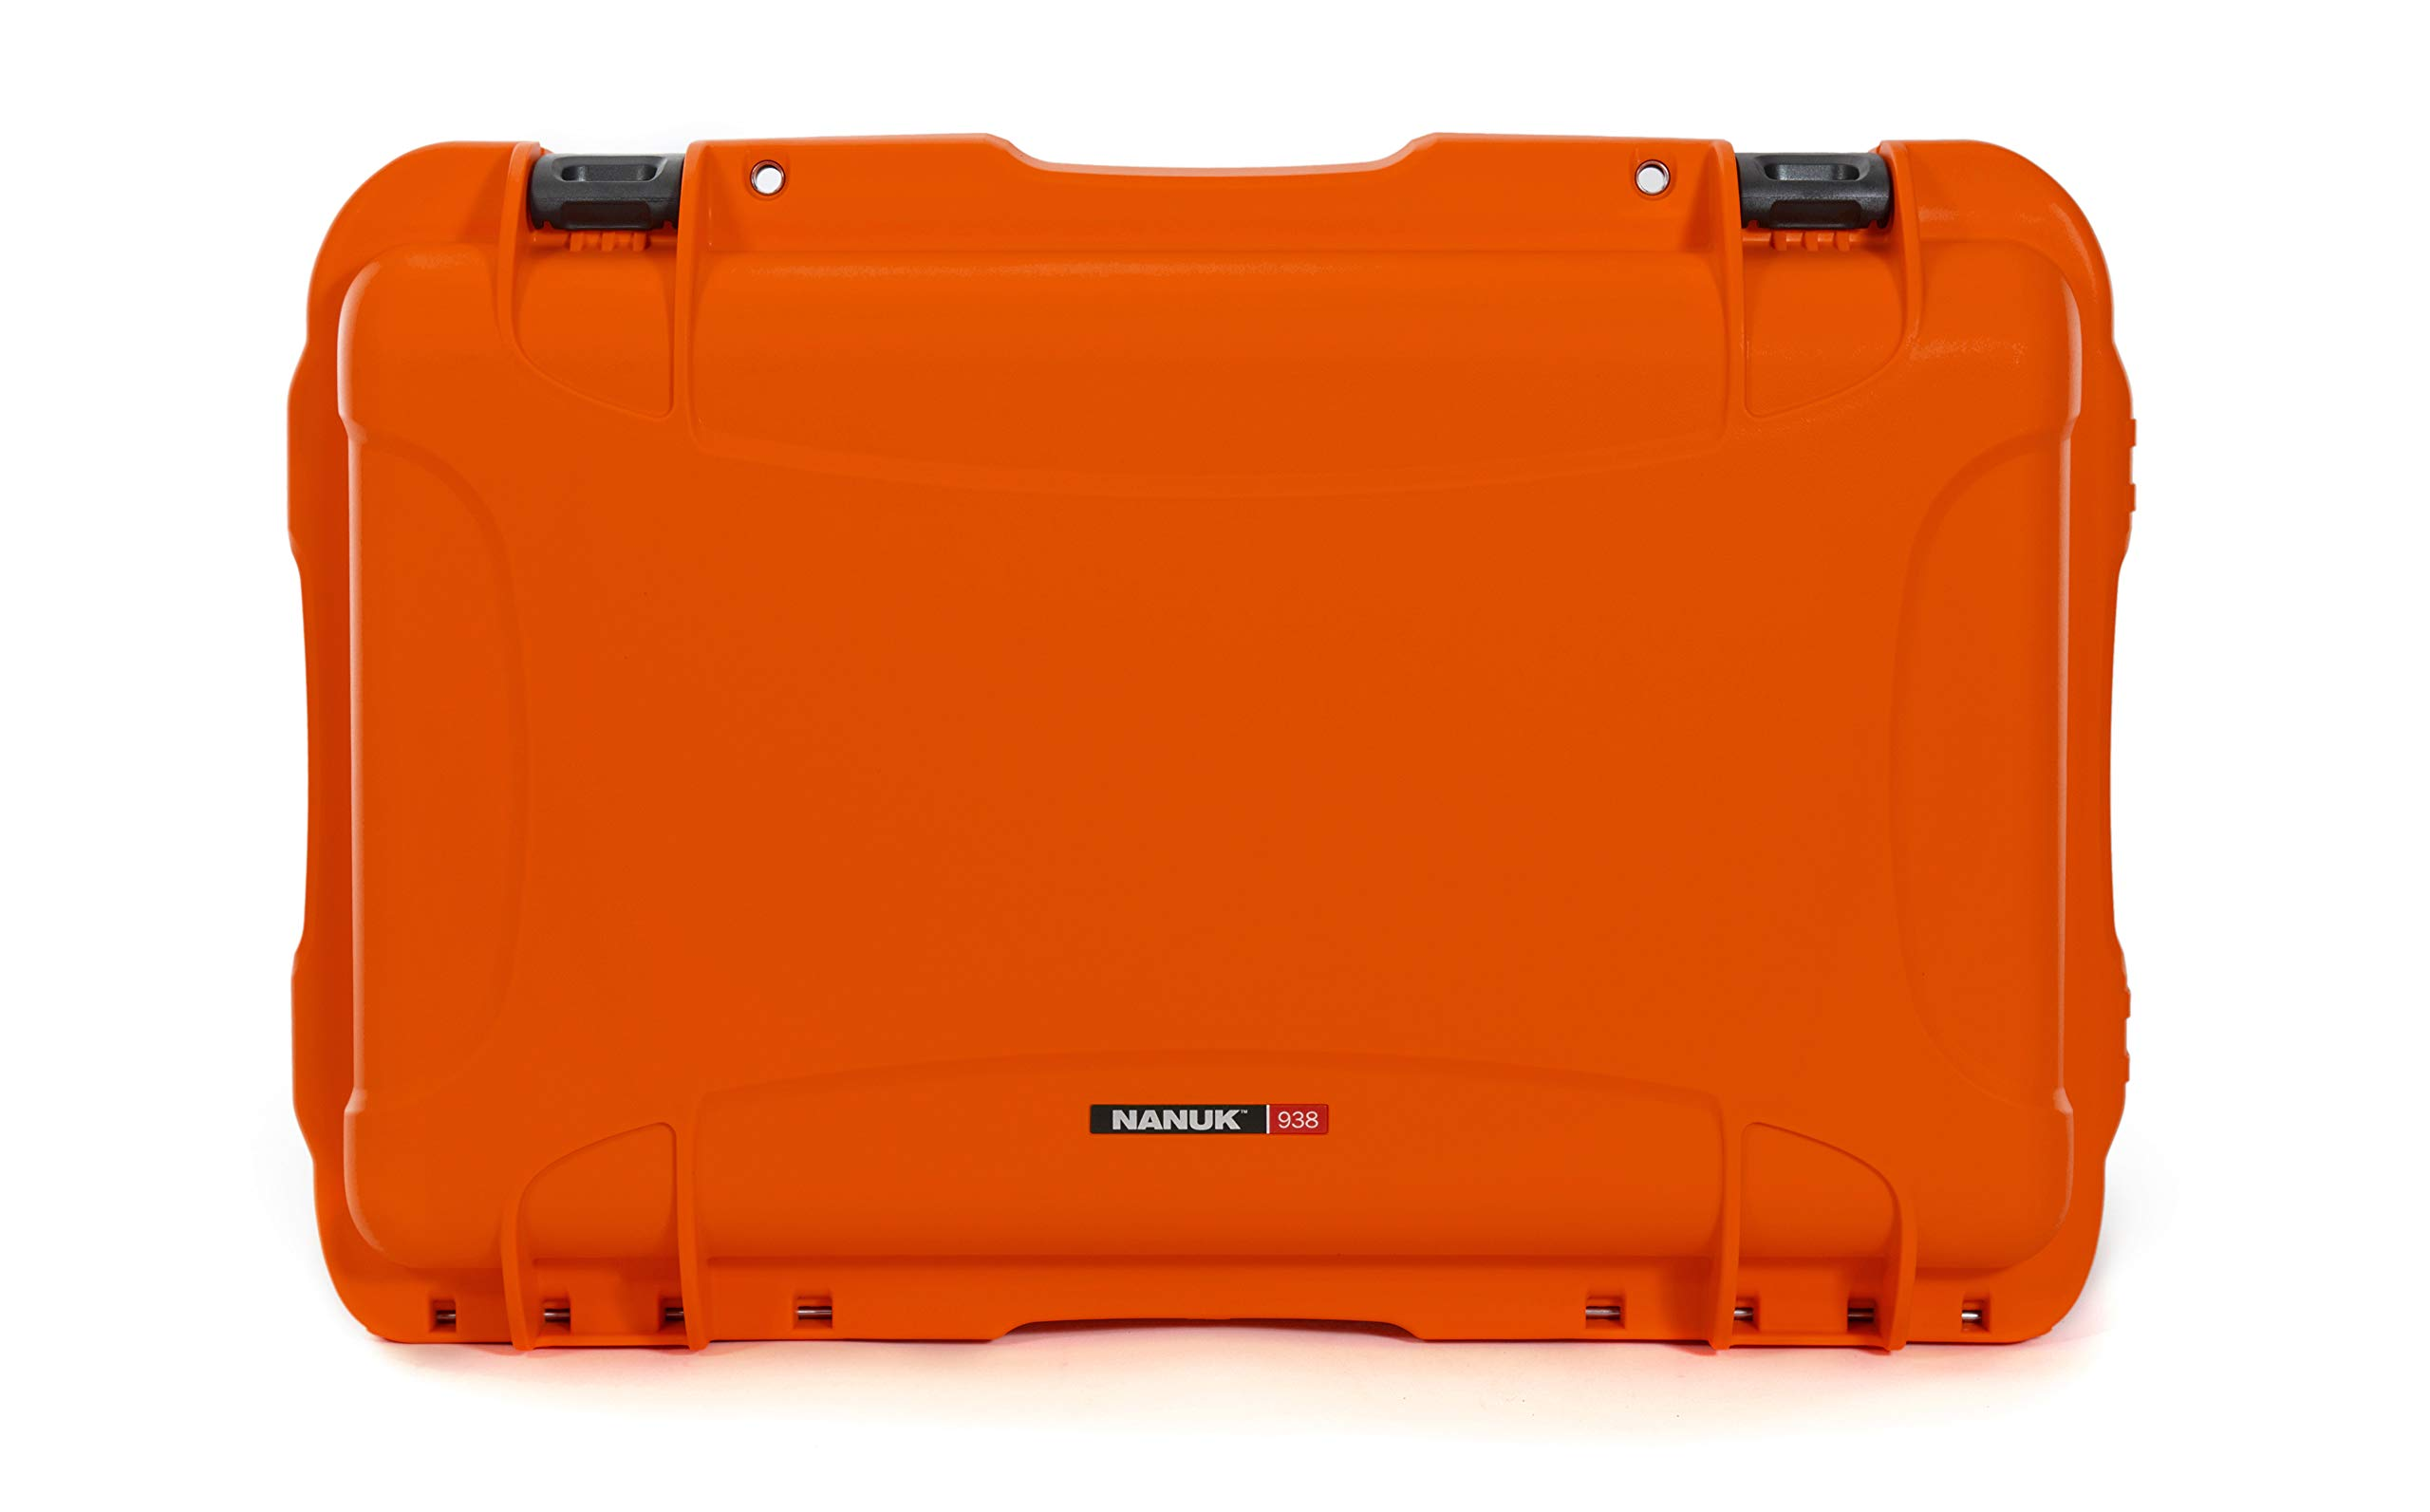 Nanuk 938 Waterproof Hard Case with Wheels - Empty - Orange by Nanuk